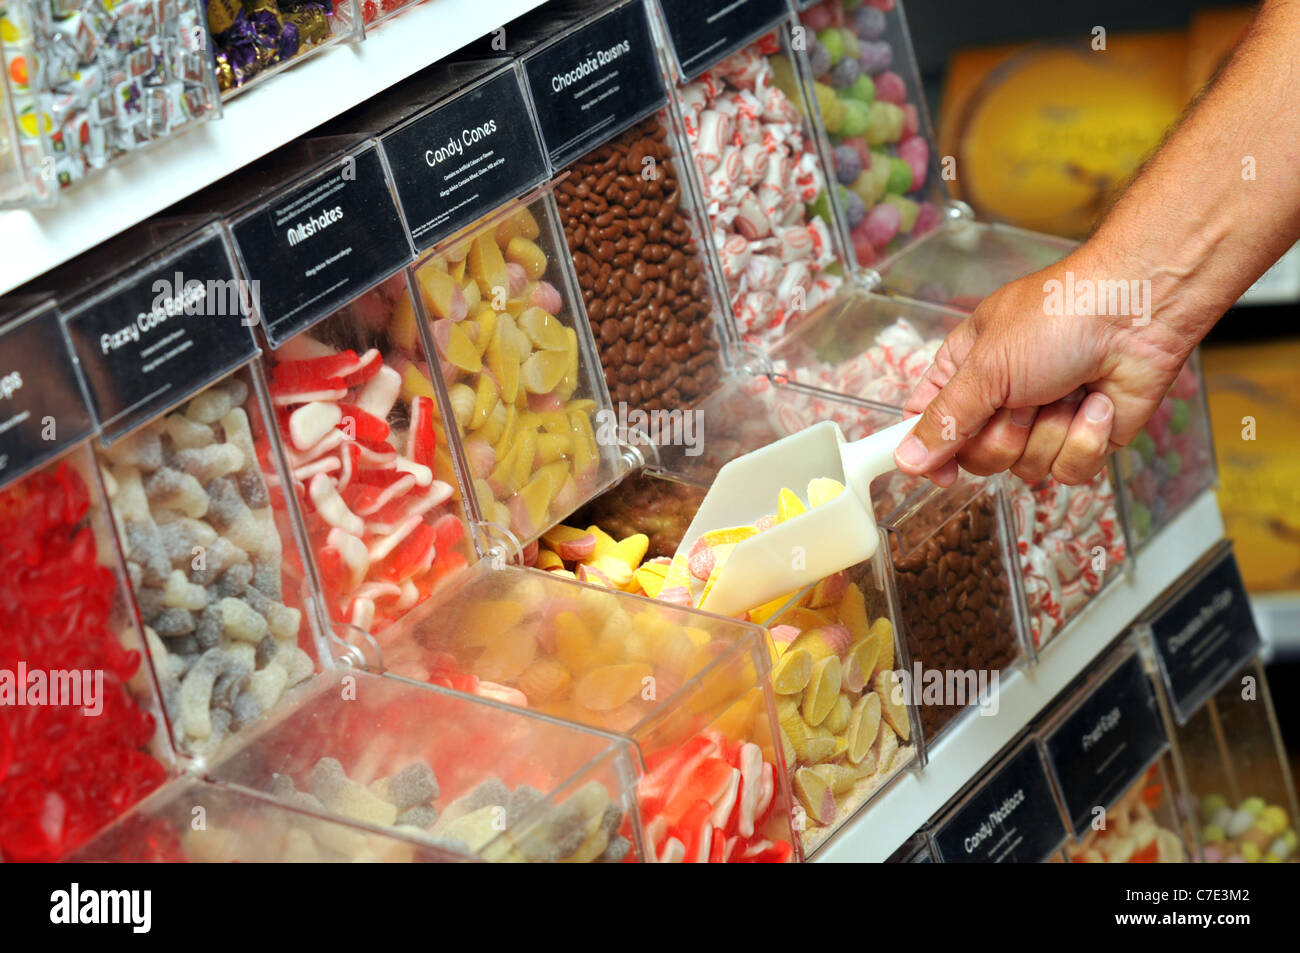 pick and mix sweets, pick n mix, candy, confectionery - Stock Image